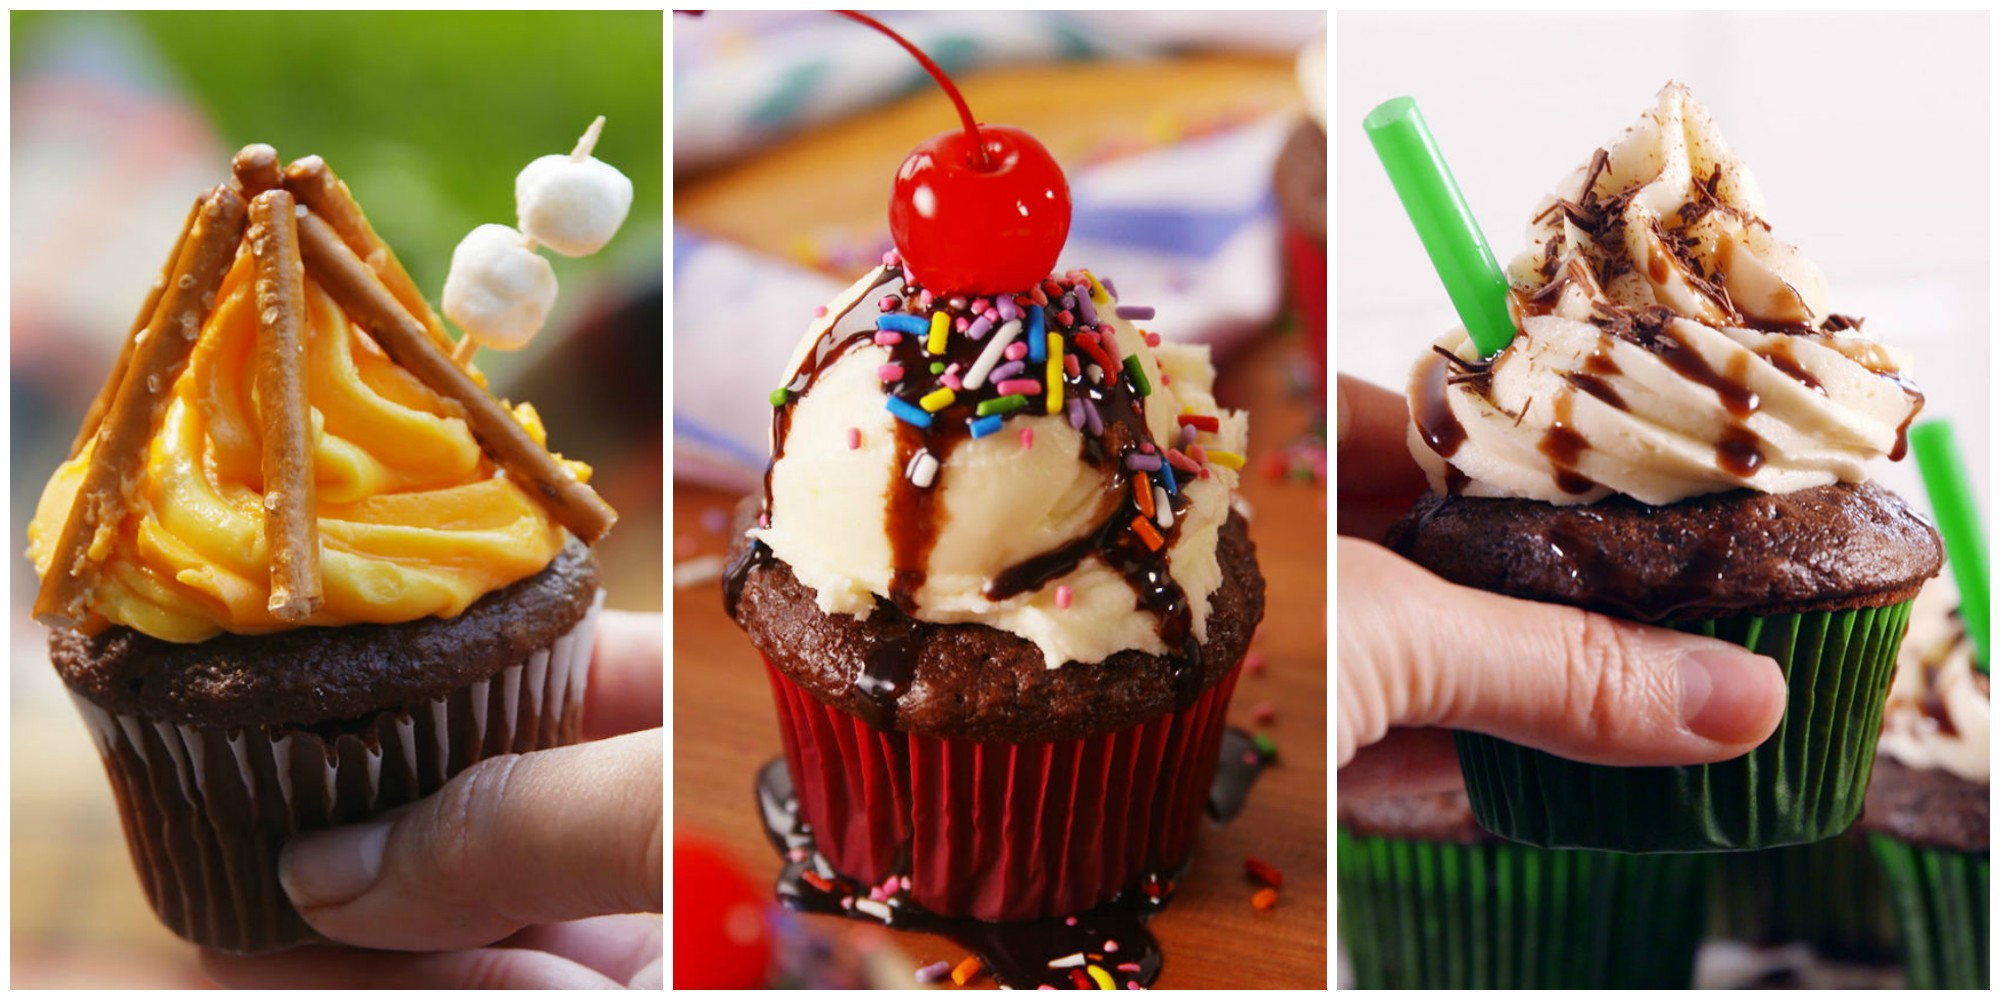 10 Easy Cupcake Recipes For Kids